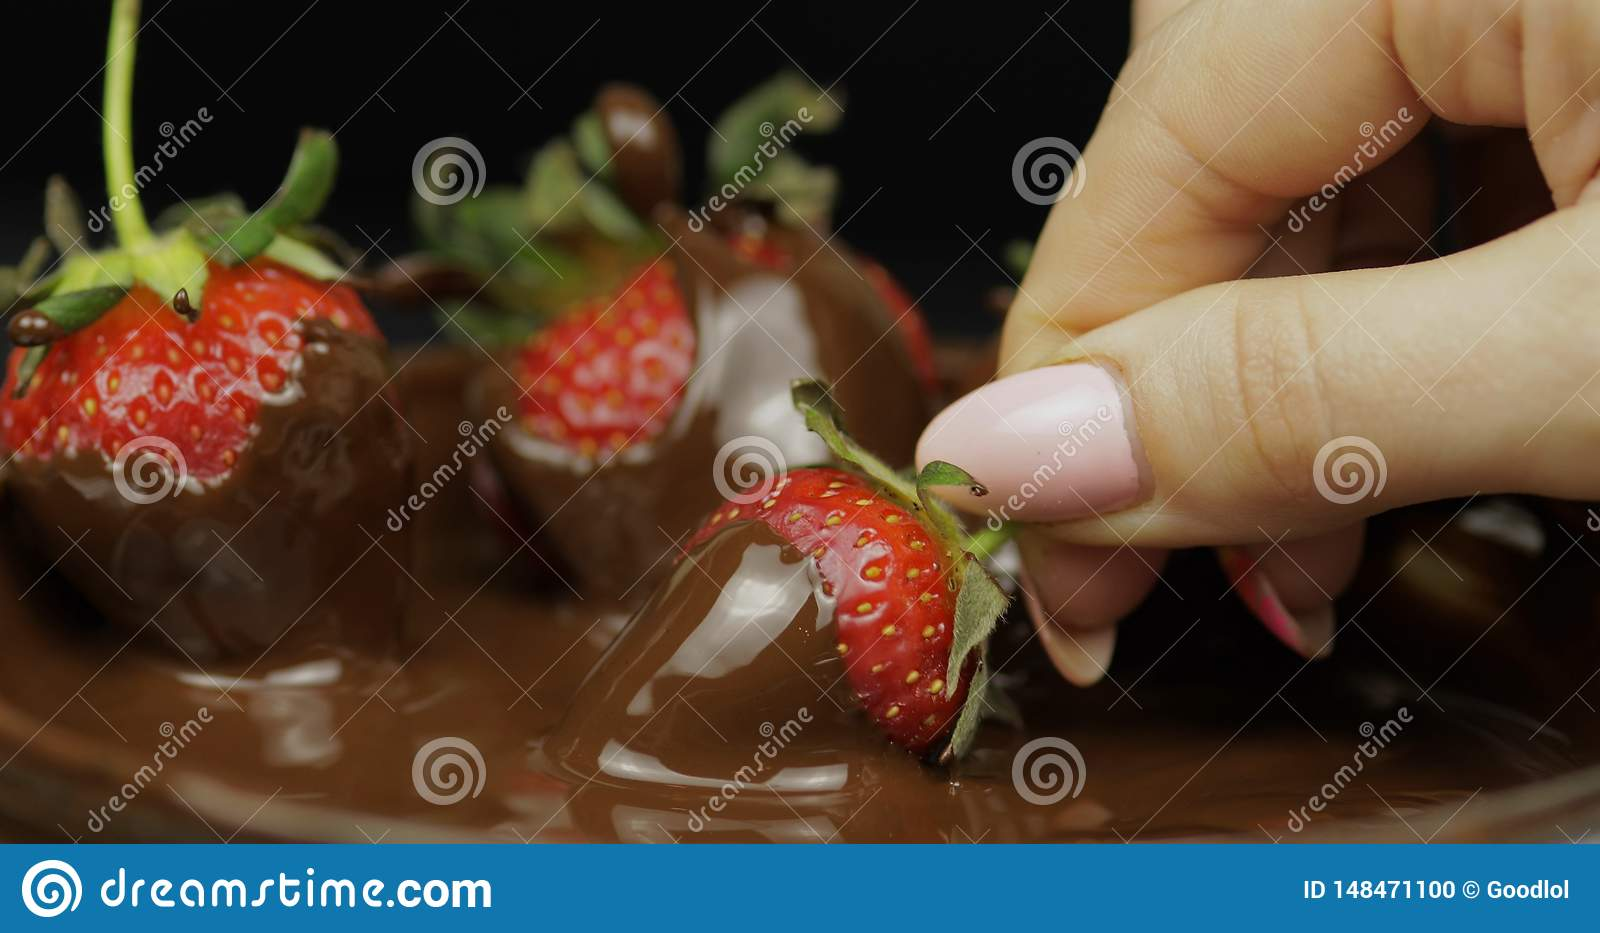 Hand dipping strawberry in melted chocolate. Fresh berries sweet dessert food